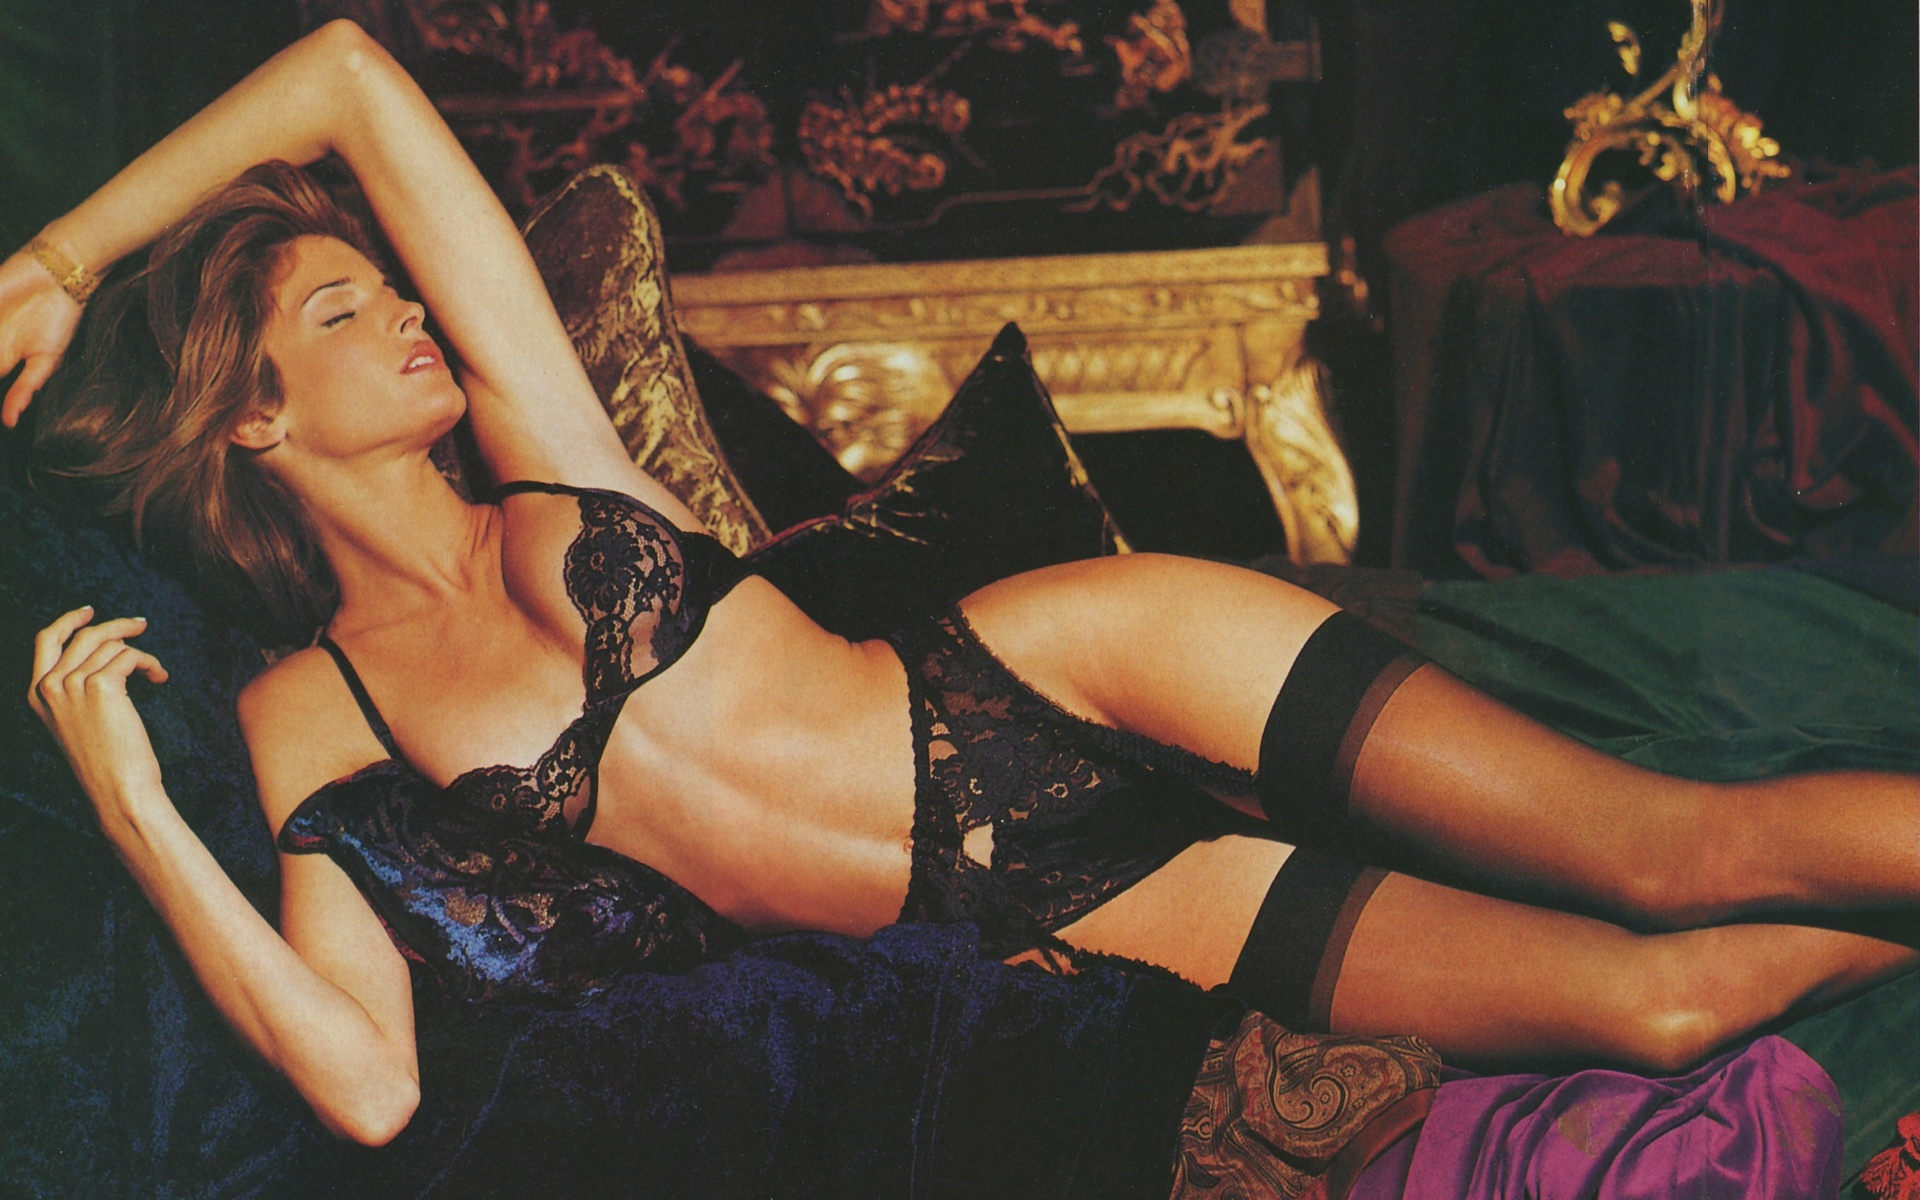 Stephanie Seymour Trying On Lingerie In Italy